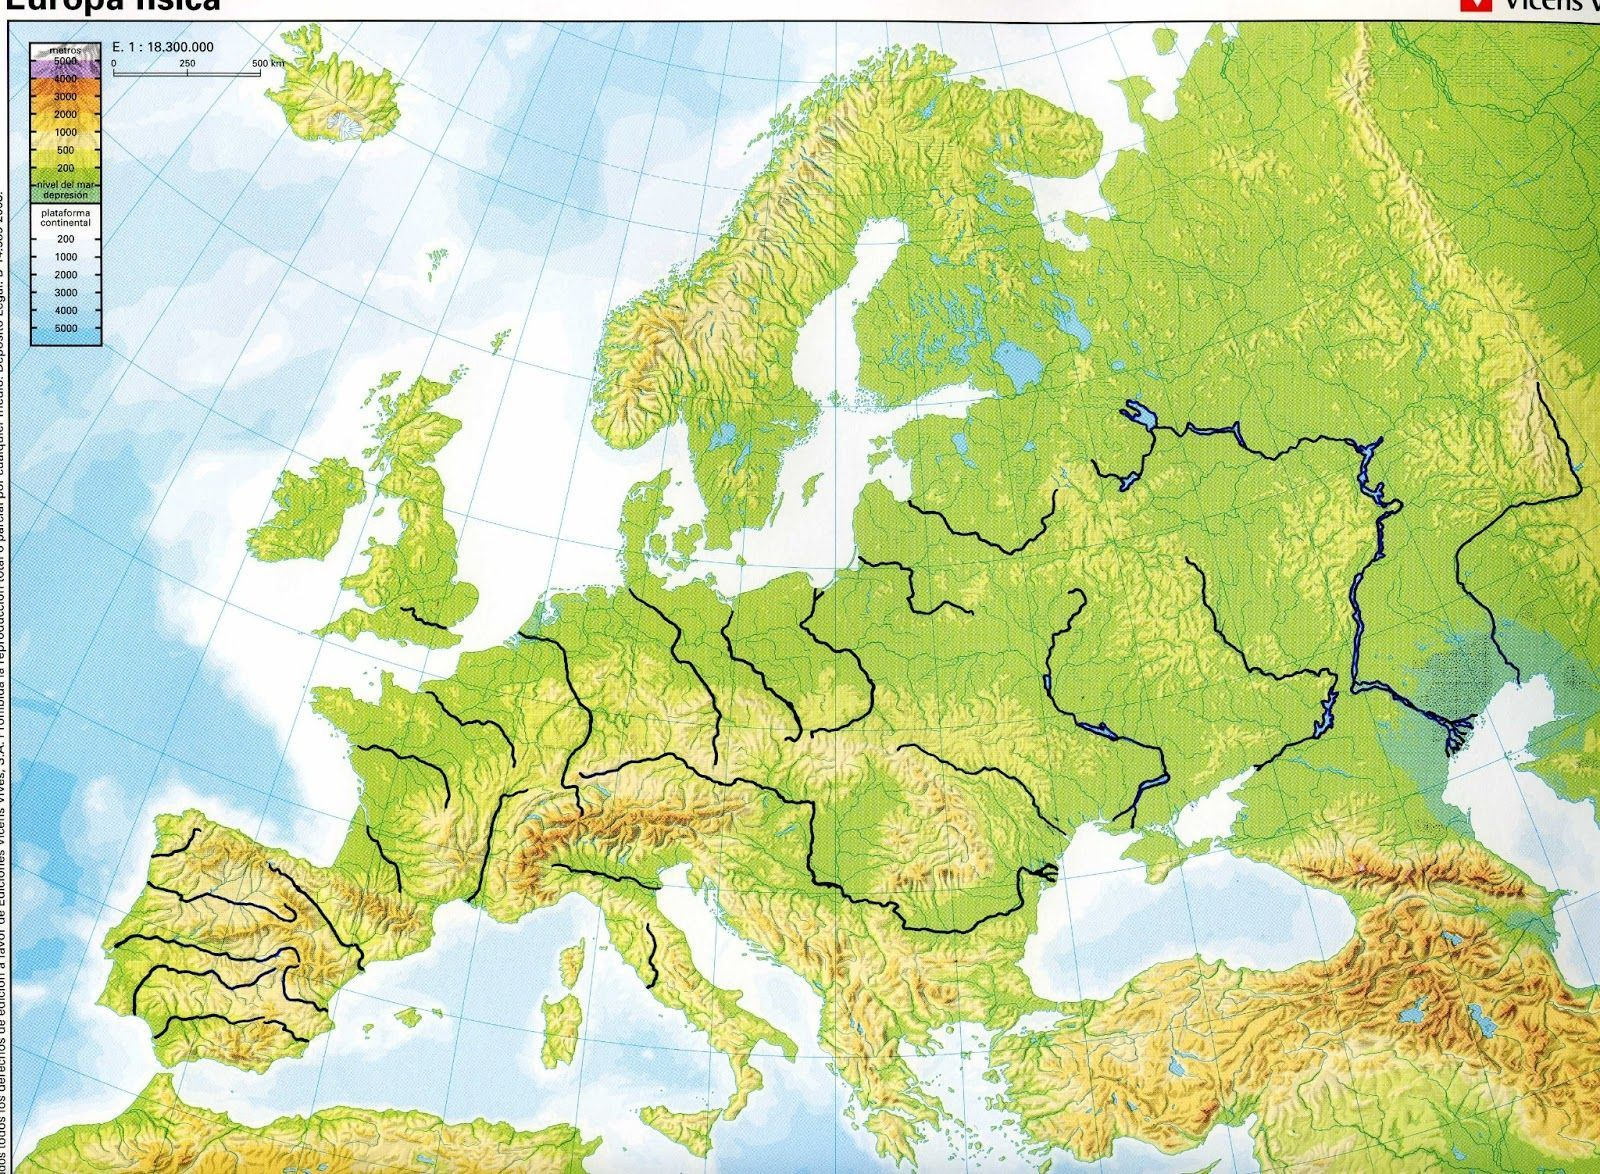 Blank Physical Map Of Europe Geography And History Blog º - Europe physical map